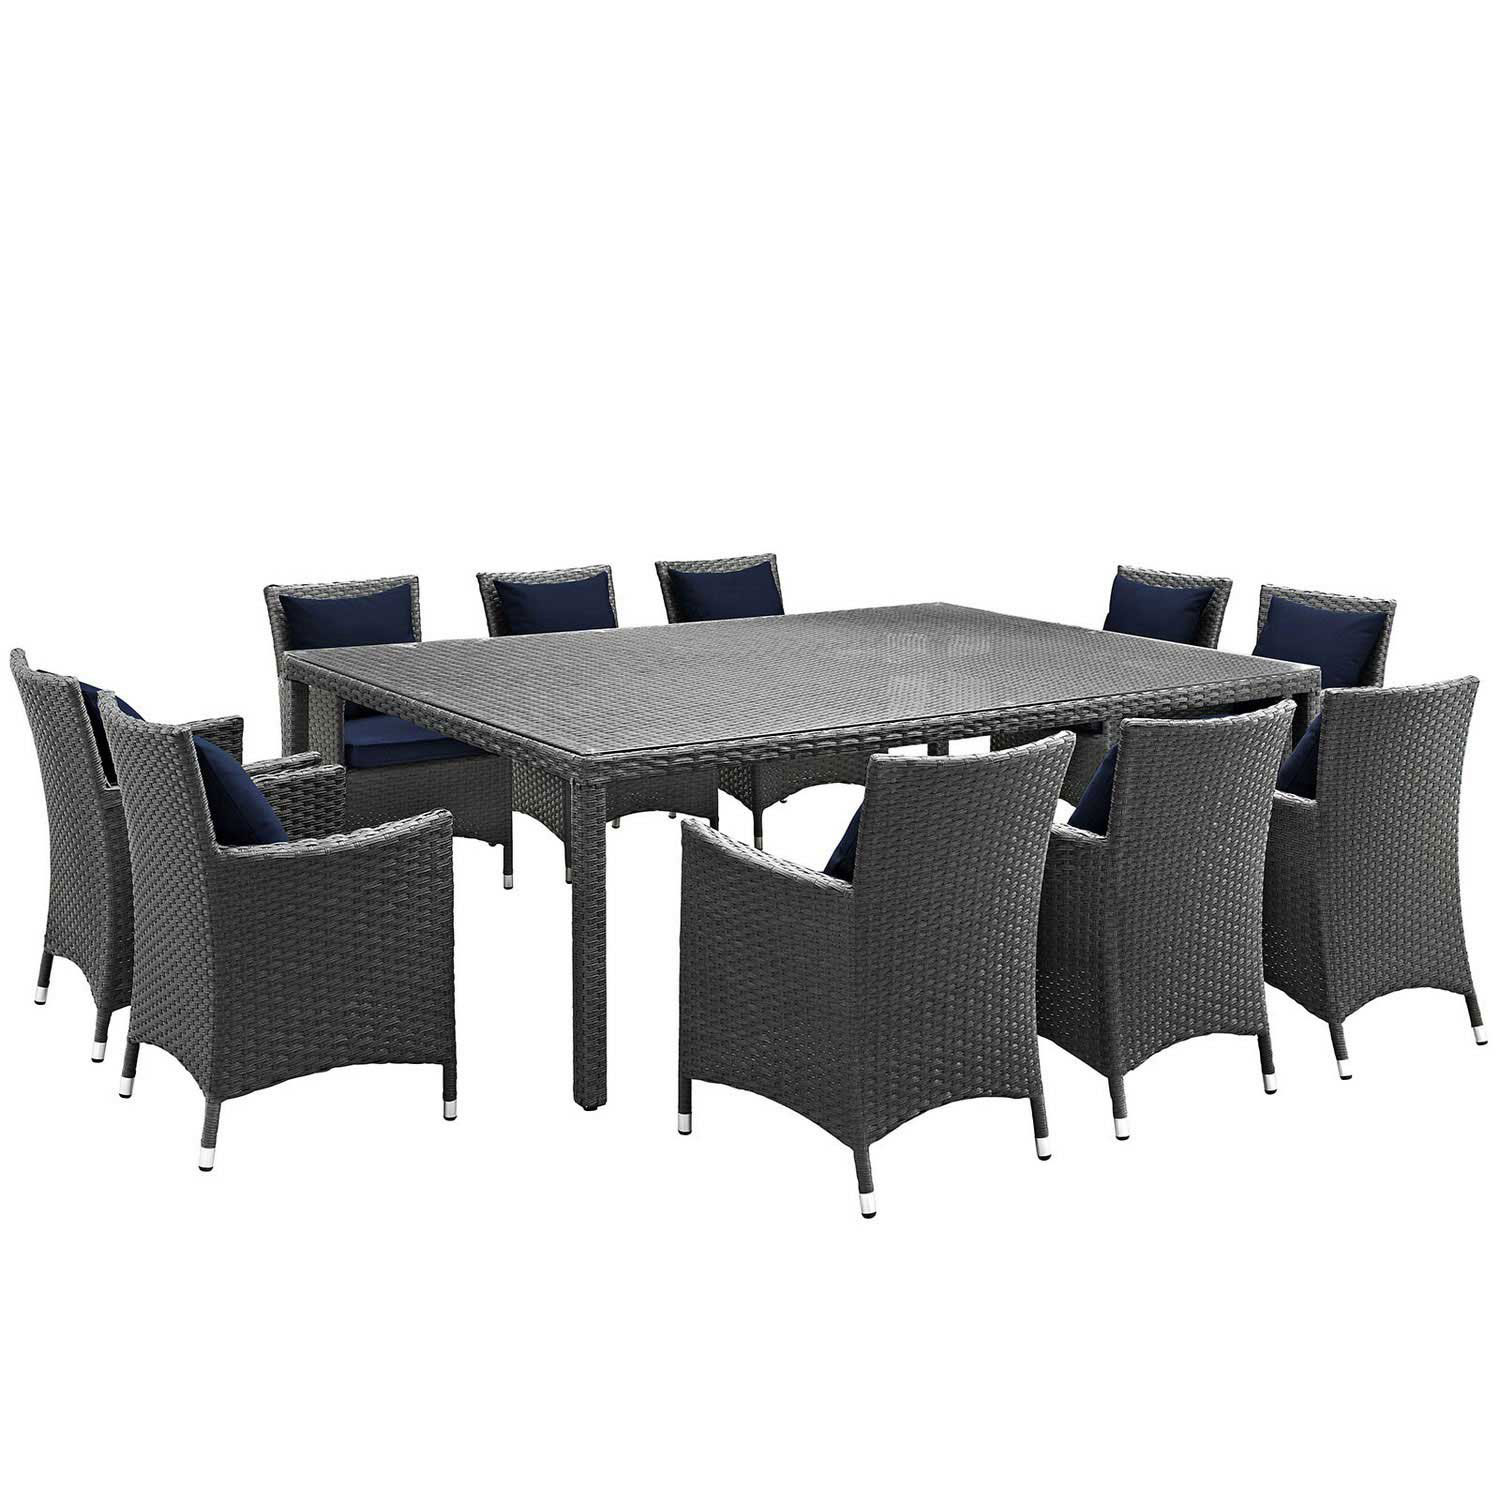 Modway Sojourn 11 Piece Outdoor Patio Sunbrella Dining Set - Canvas Navy